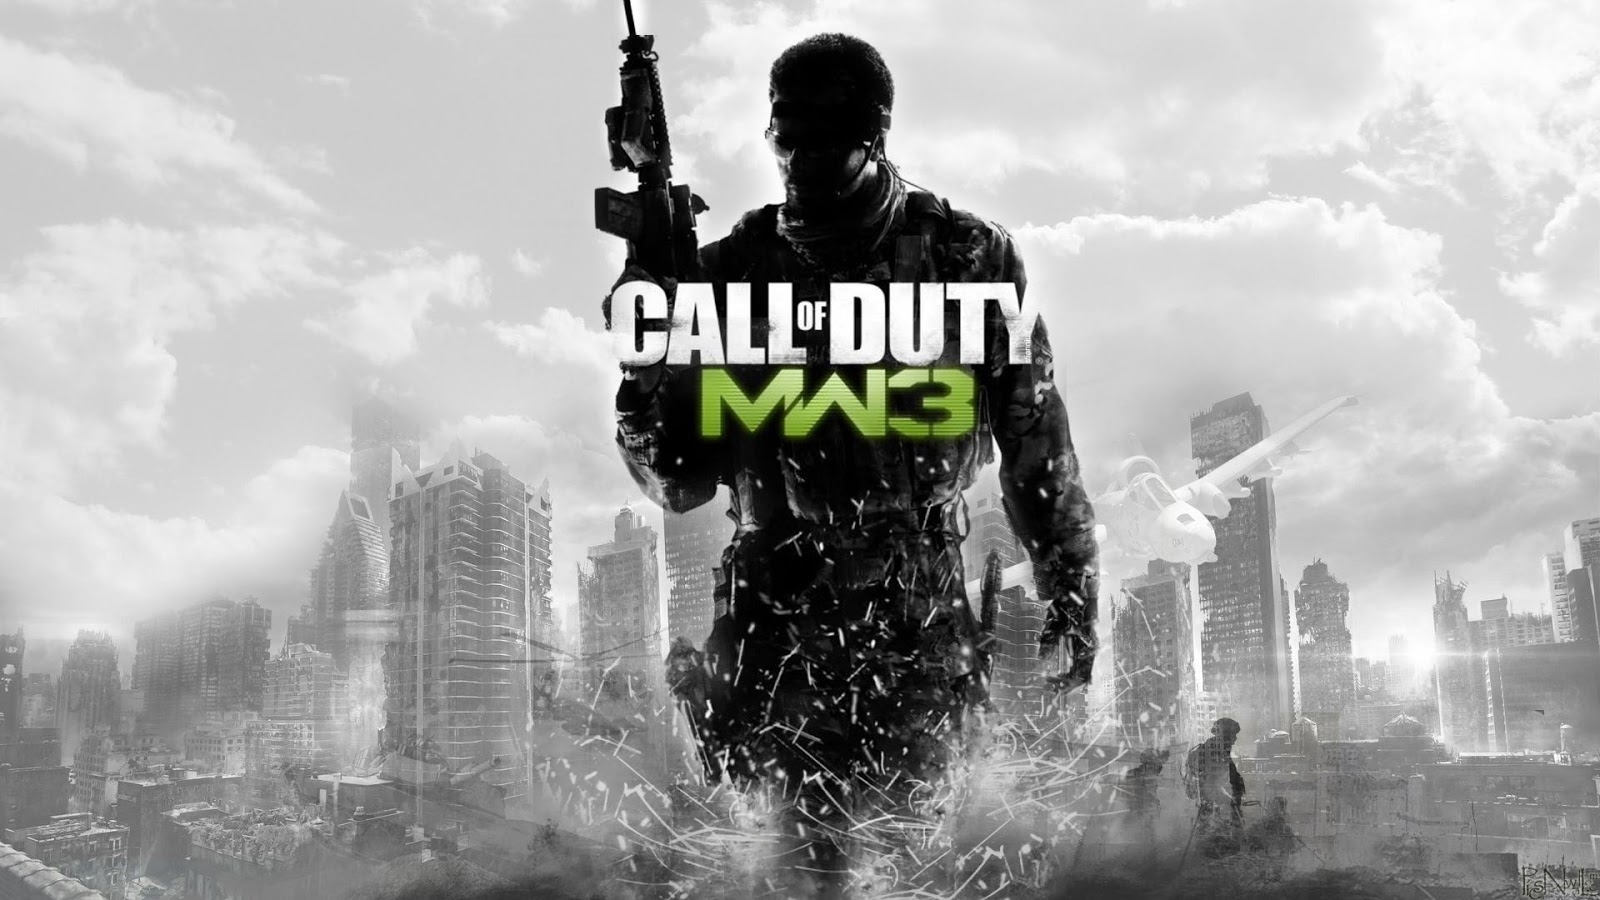 Call Of Duty Wallpaper Hd: TOP HD WALLPAPERS: March 2013